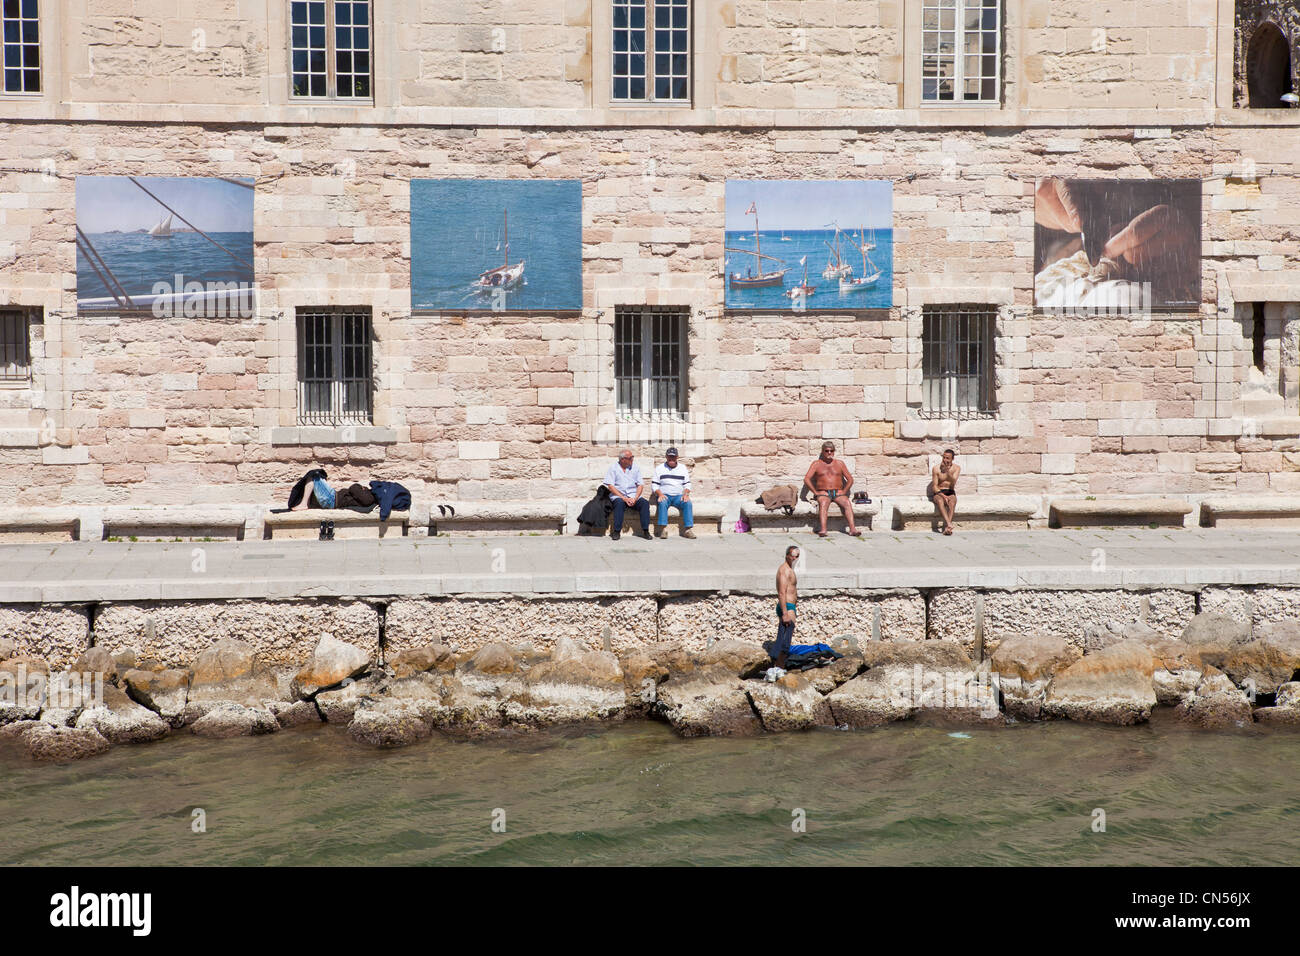 France, Bouches du Rhone, Marseille, Fort St. Jean, at the entrance of the Vieux Port Stock Photo